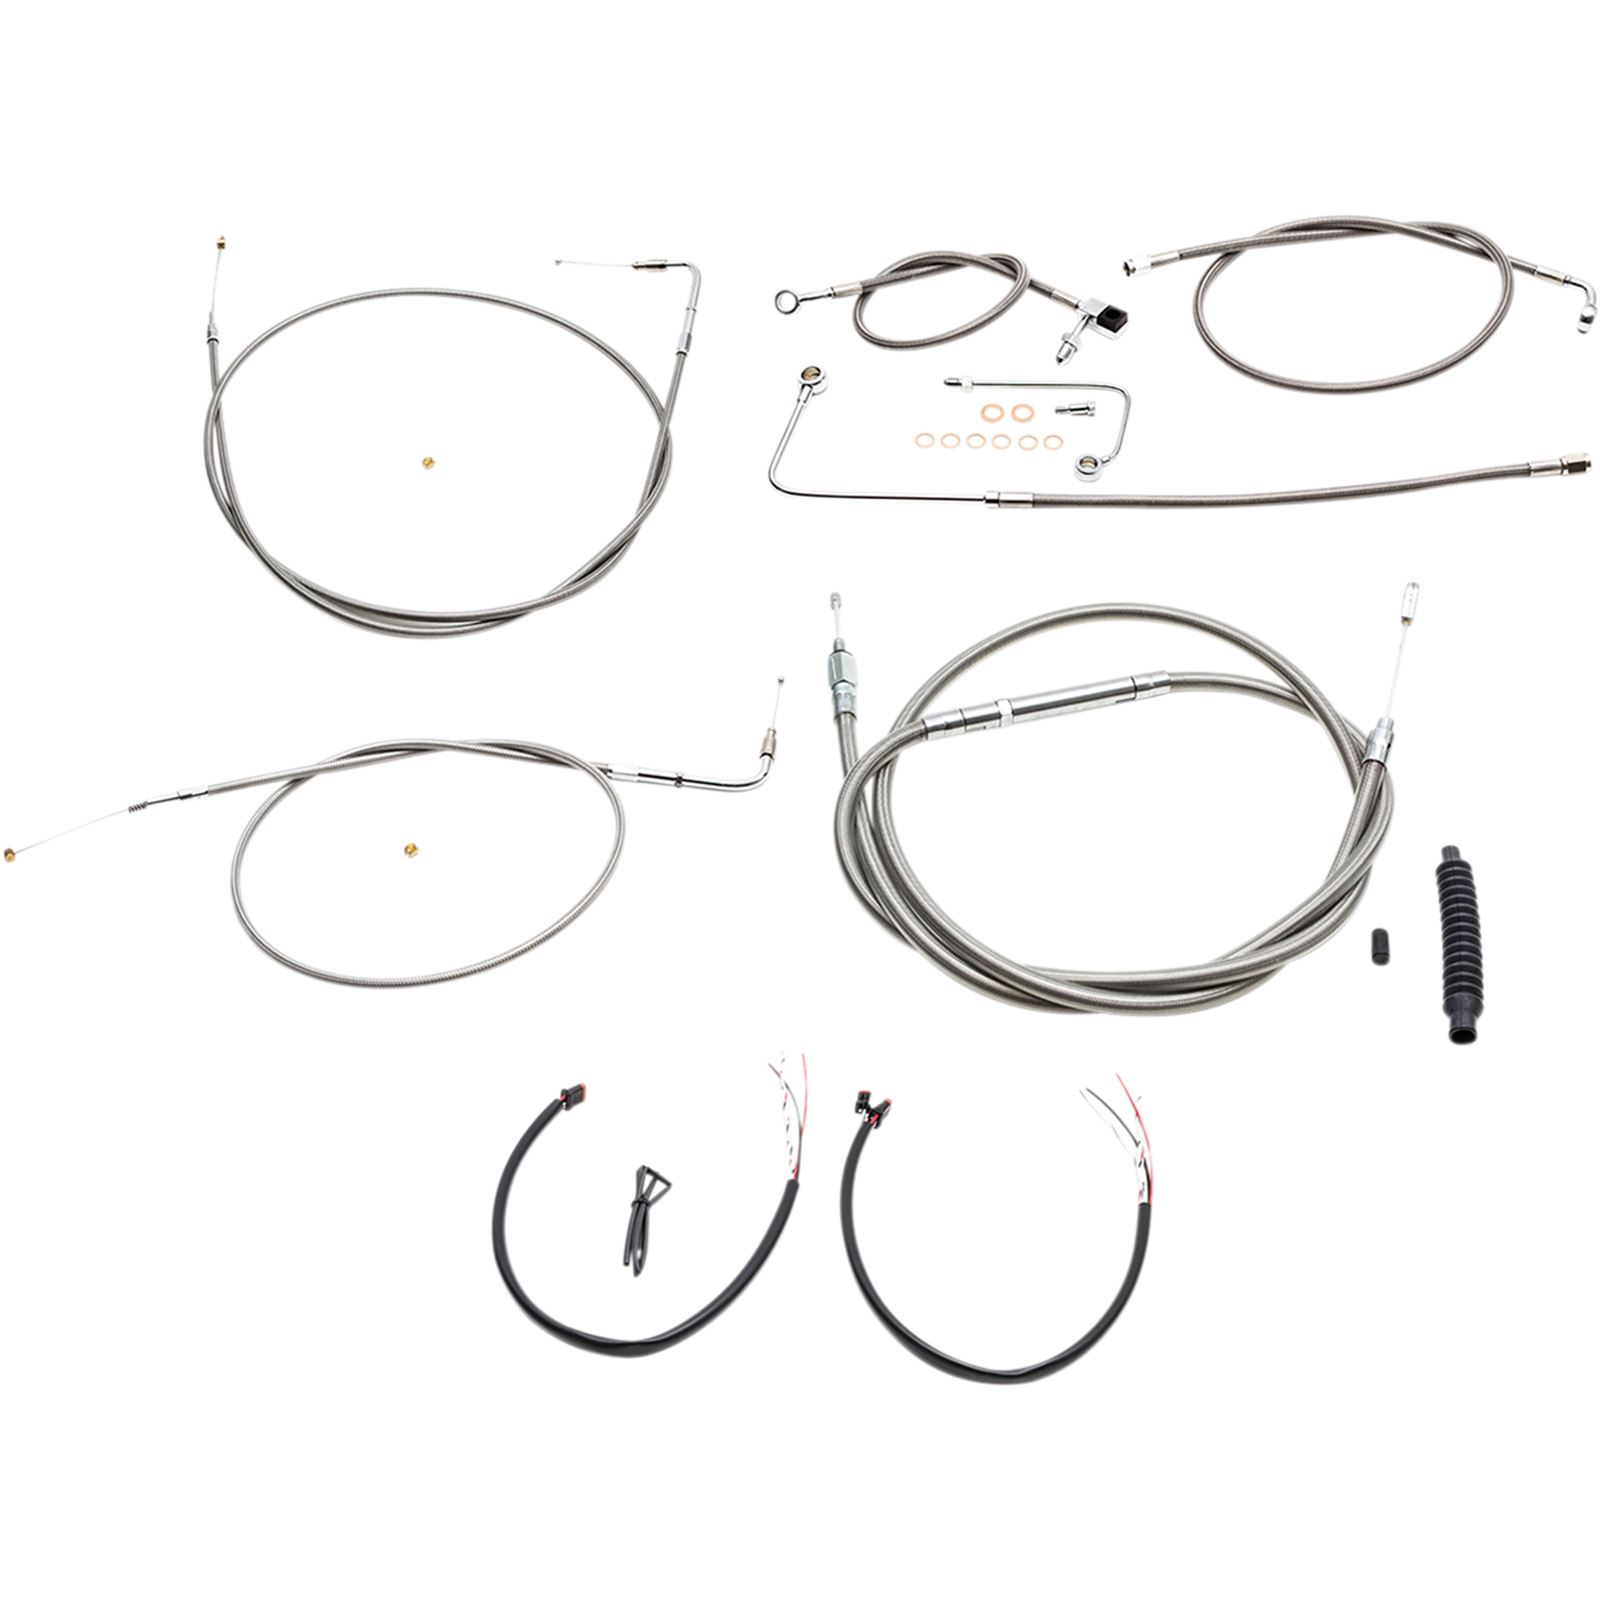 LA Choppers Mini Cable Kit for '15 Softail